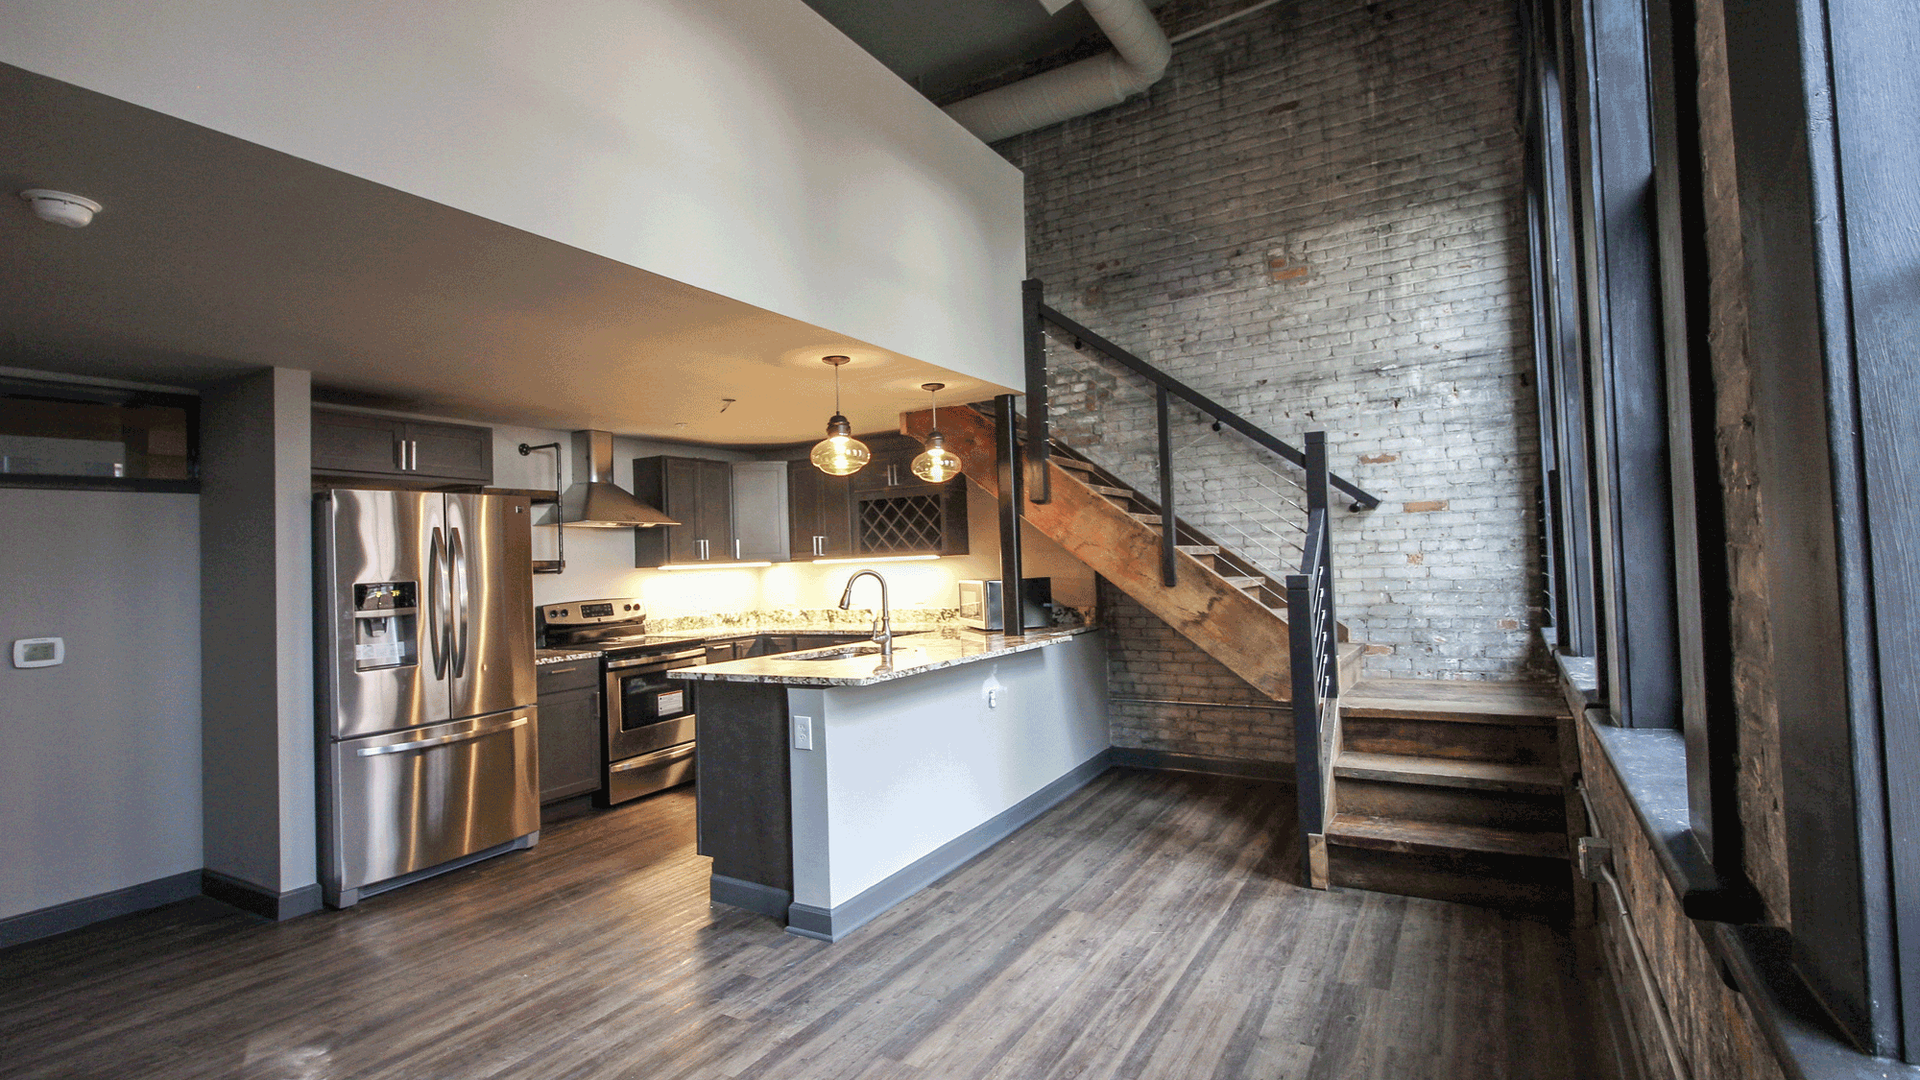 Revamped living in Cleveland's historic Warehouse District after nearly 20 years.